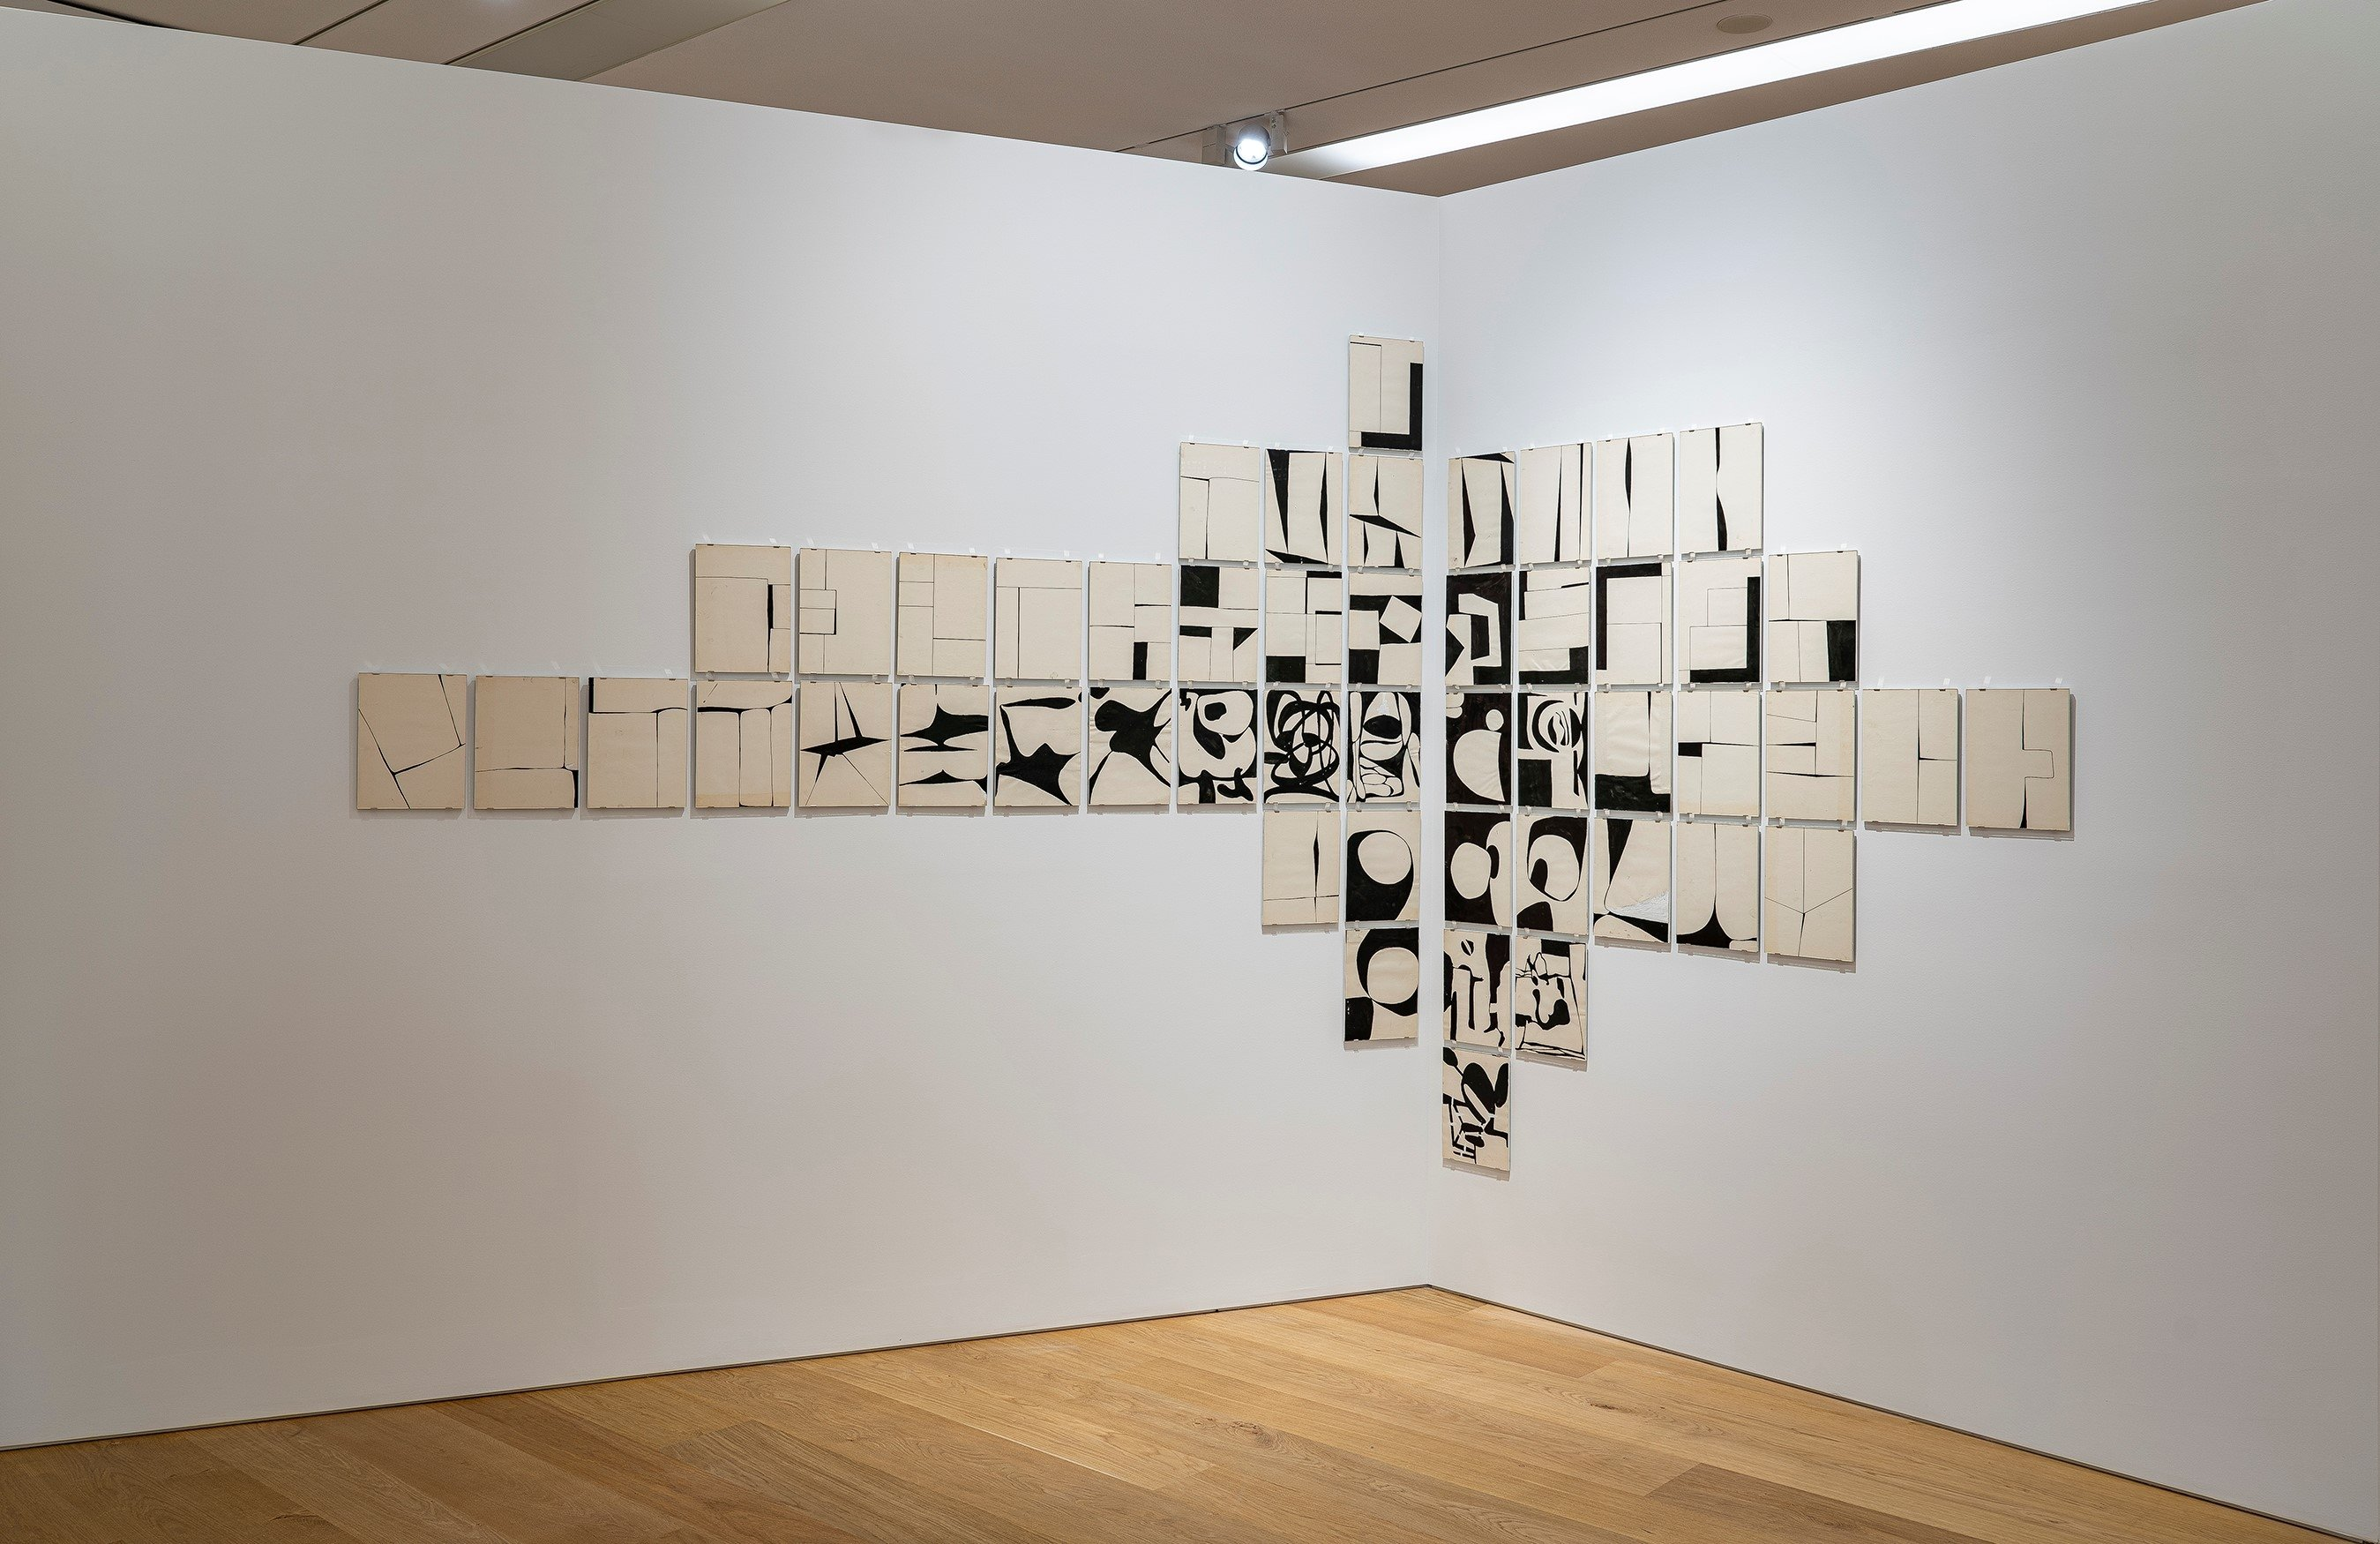 'Dividing Space on a White Piece of Paper,' sketches, 50 pieces, 30 by 22.5 centimeters. (Courtesy of Arter)